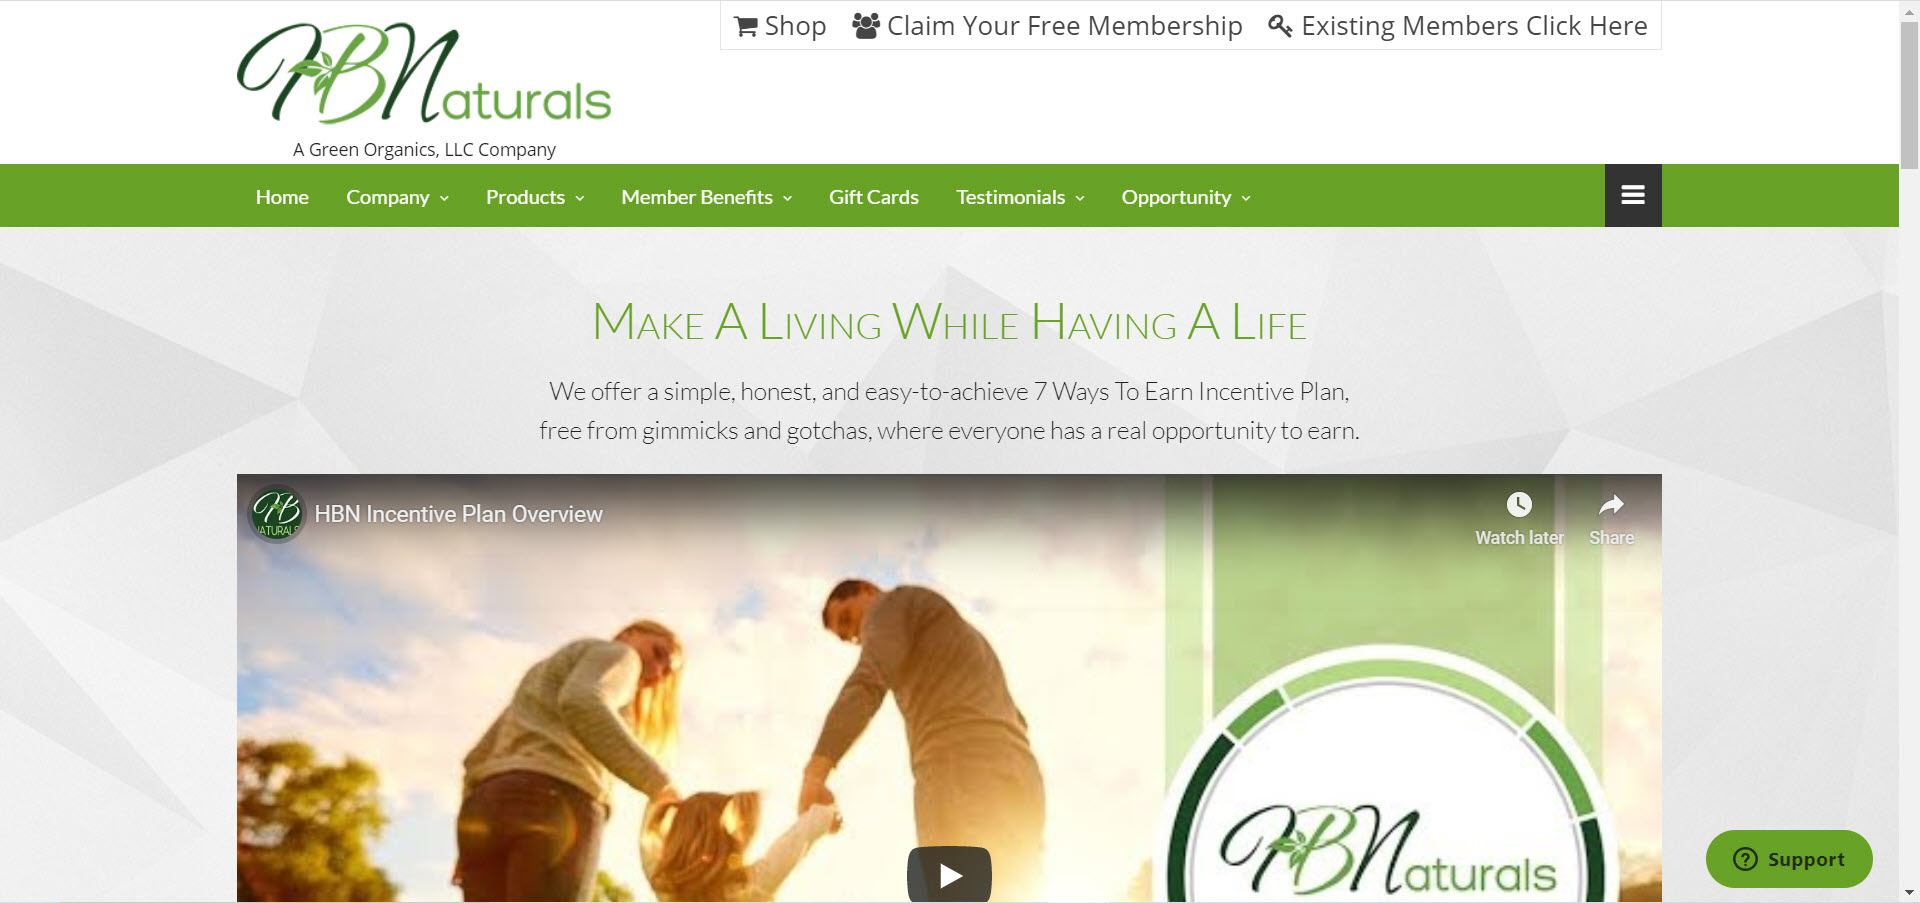 HB Naturals - opportunity page